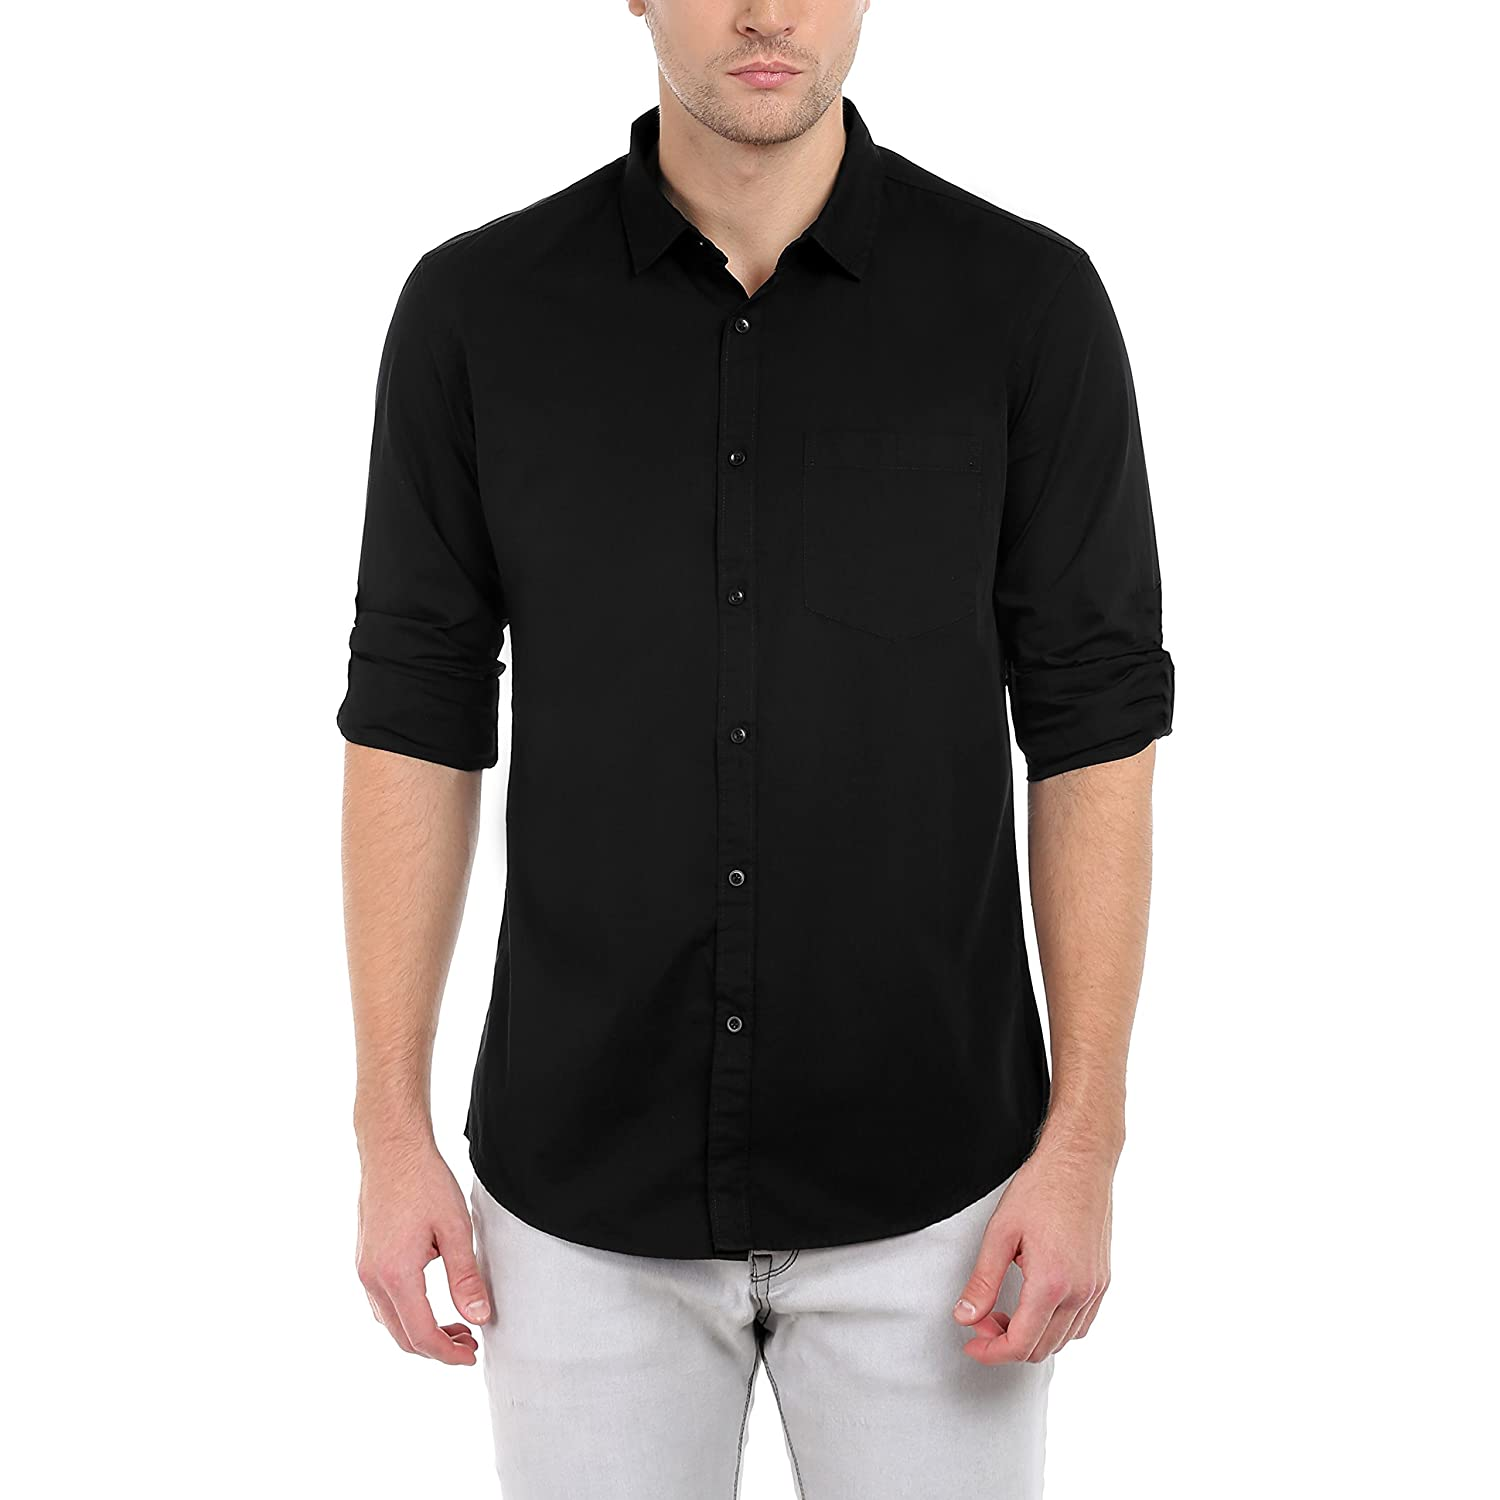 Wear men's T-shirts for casual night outs, to work, and when running daily errands. T-shirts are comfortable, casual apparel that complements dress pants, sweatpants, jeans, and more. Popular brands include Oakley, The North Face, and Columbia.